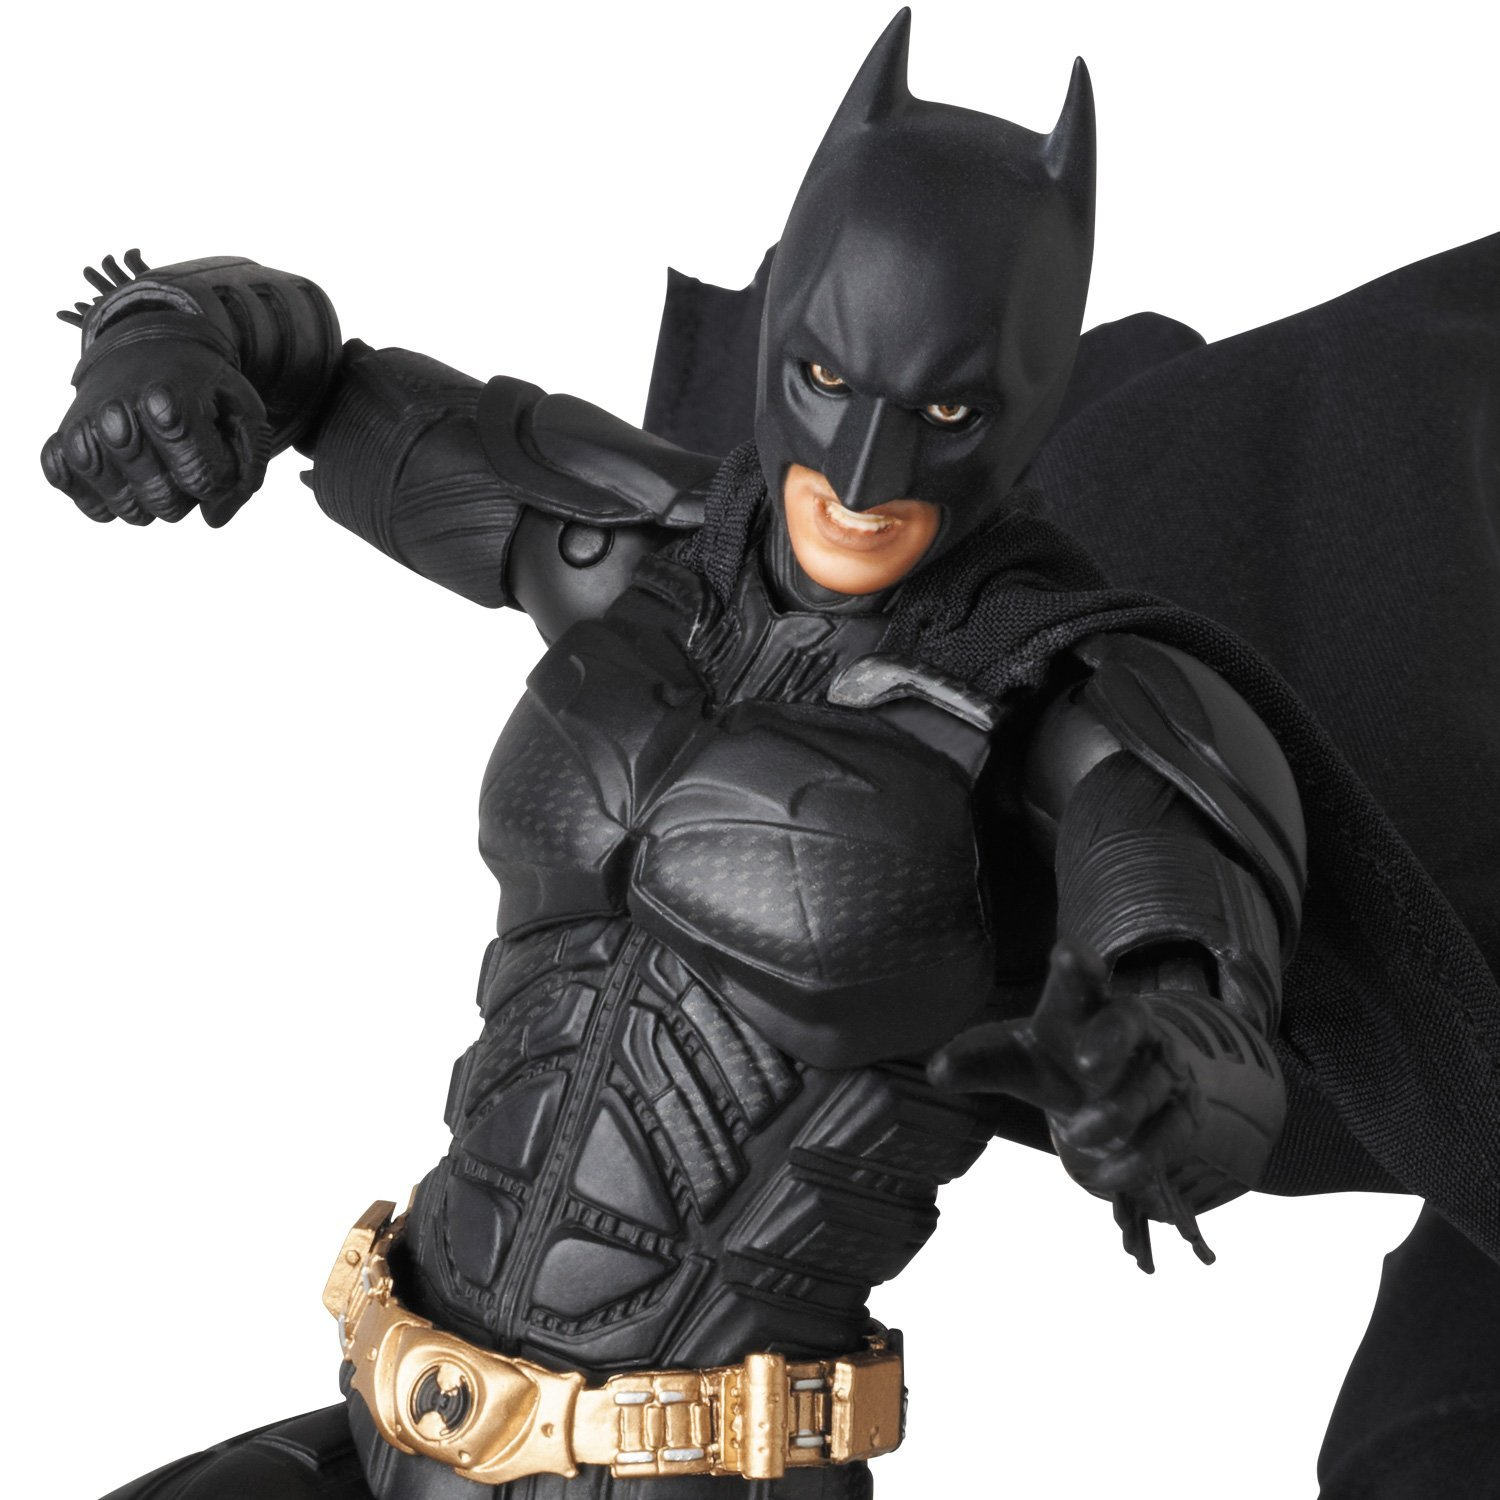 MEDICOM DARK KNIGHT RISES BATMAN PX MAF EX VER 3 ACTION FIGURE